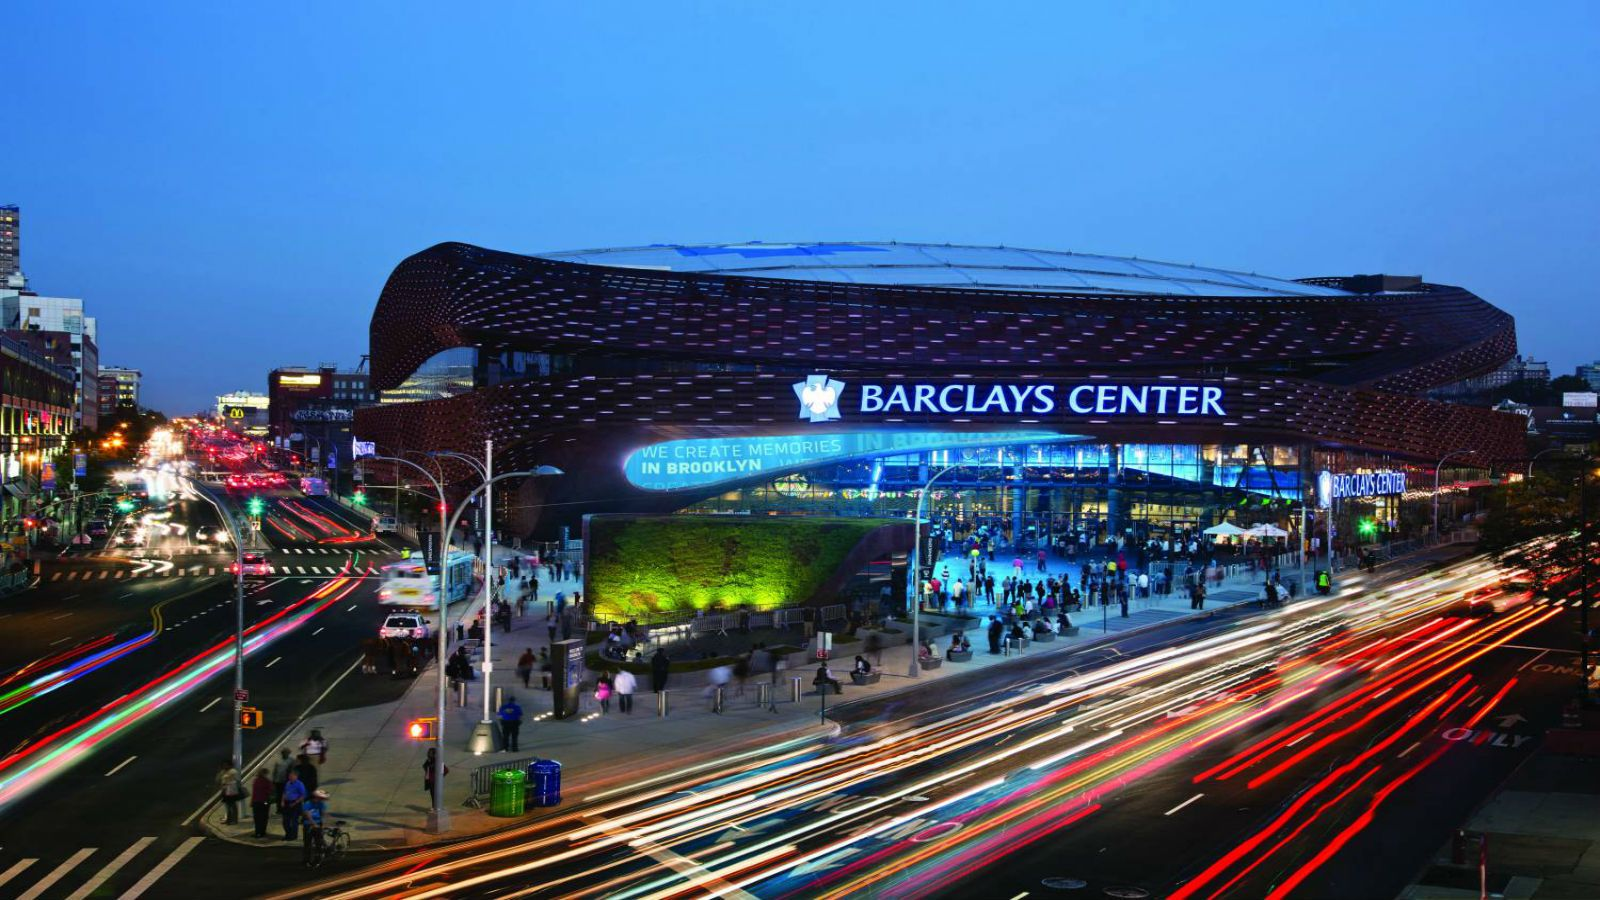 Things to do in Brooklyn - Barclays Center